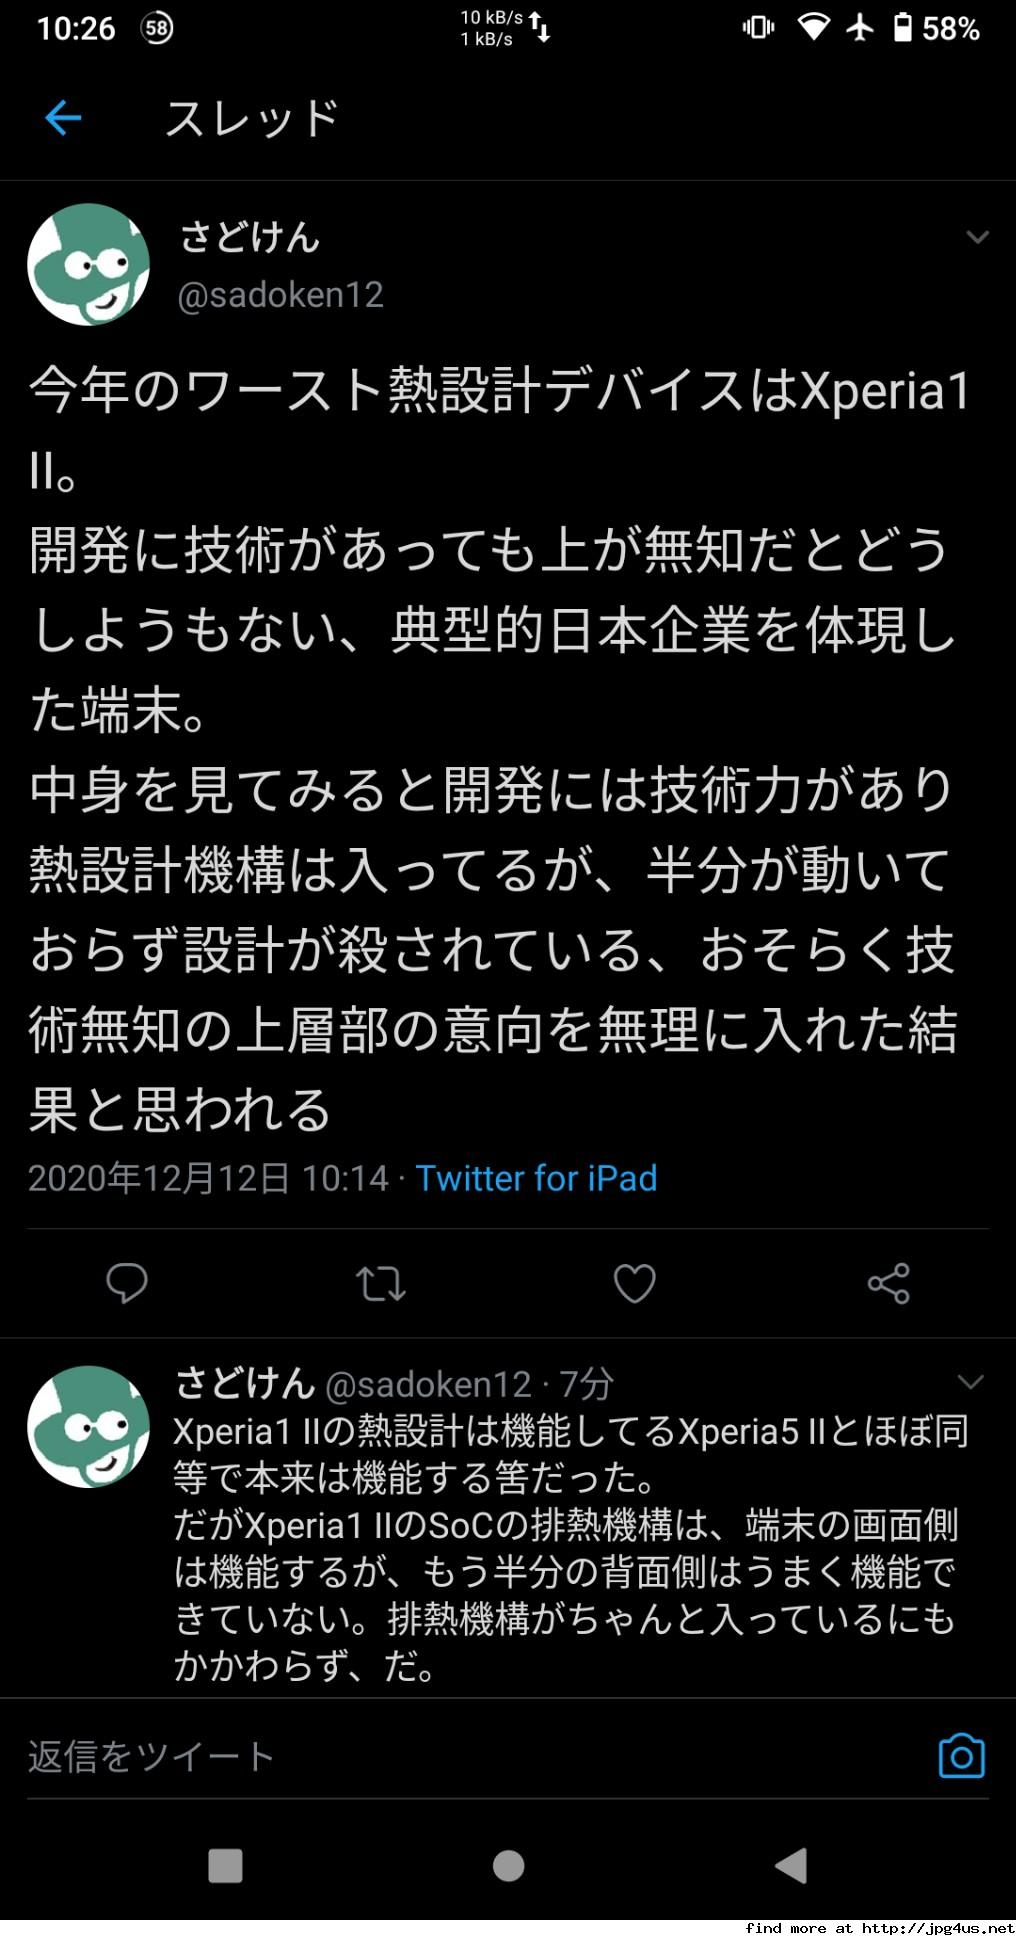 SONY Xperia 1 II Part44 ->画像>23枚